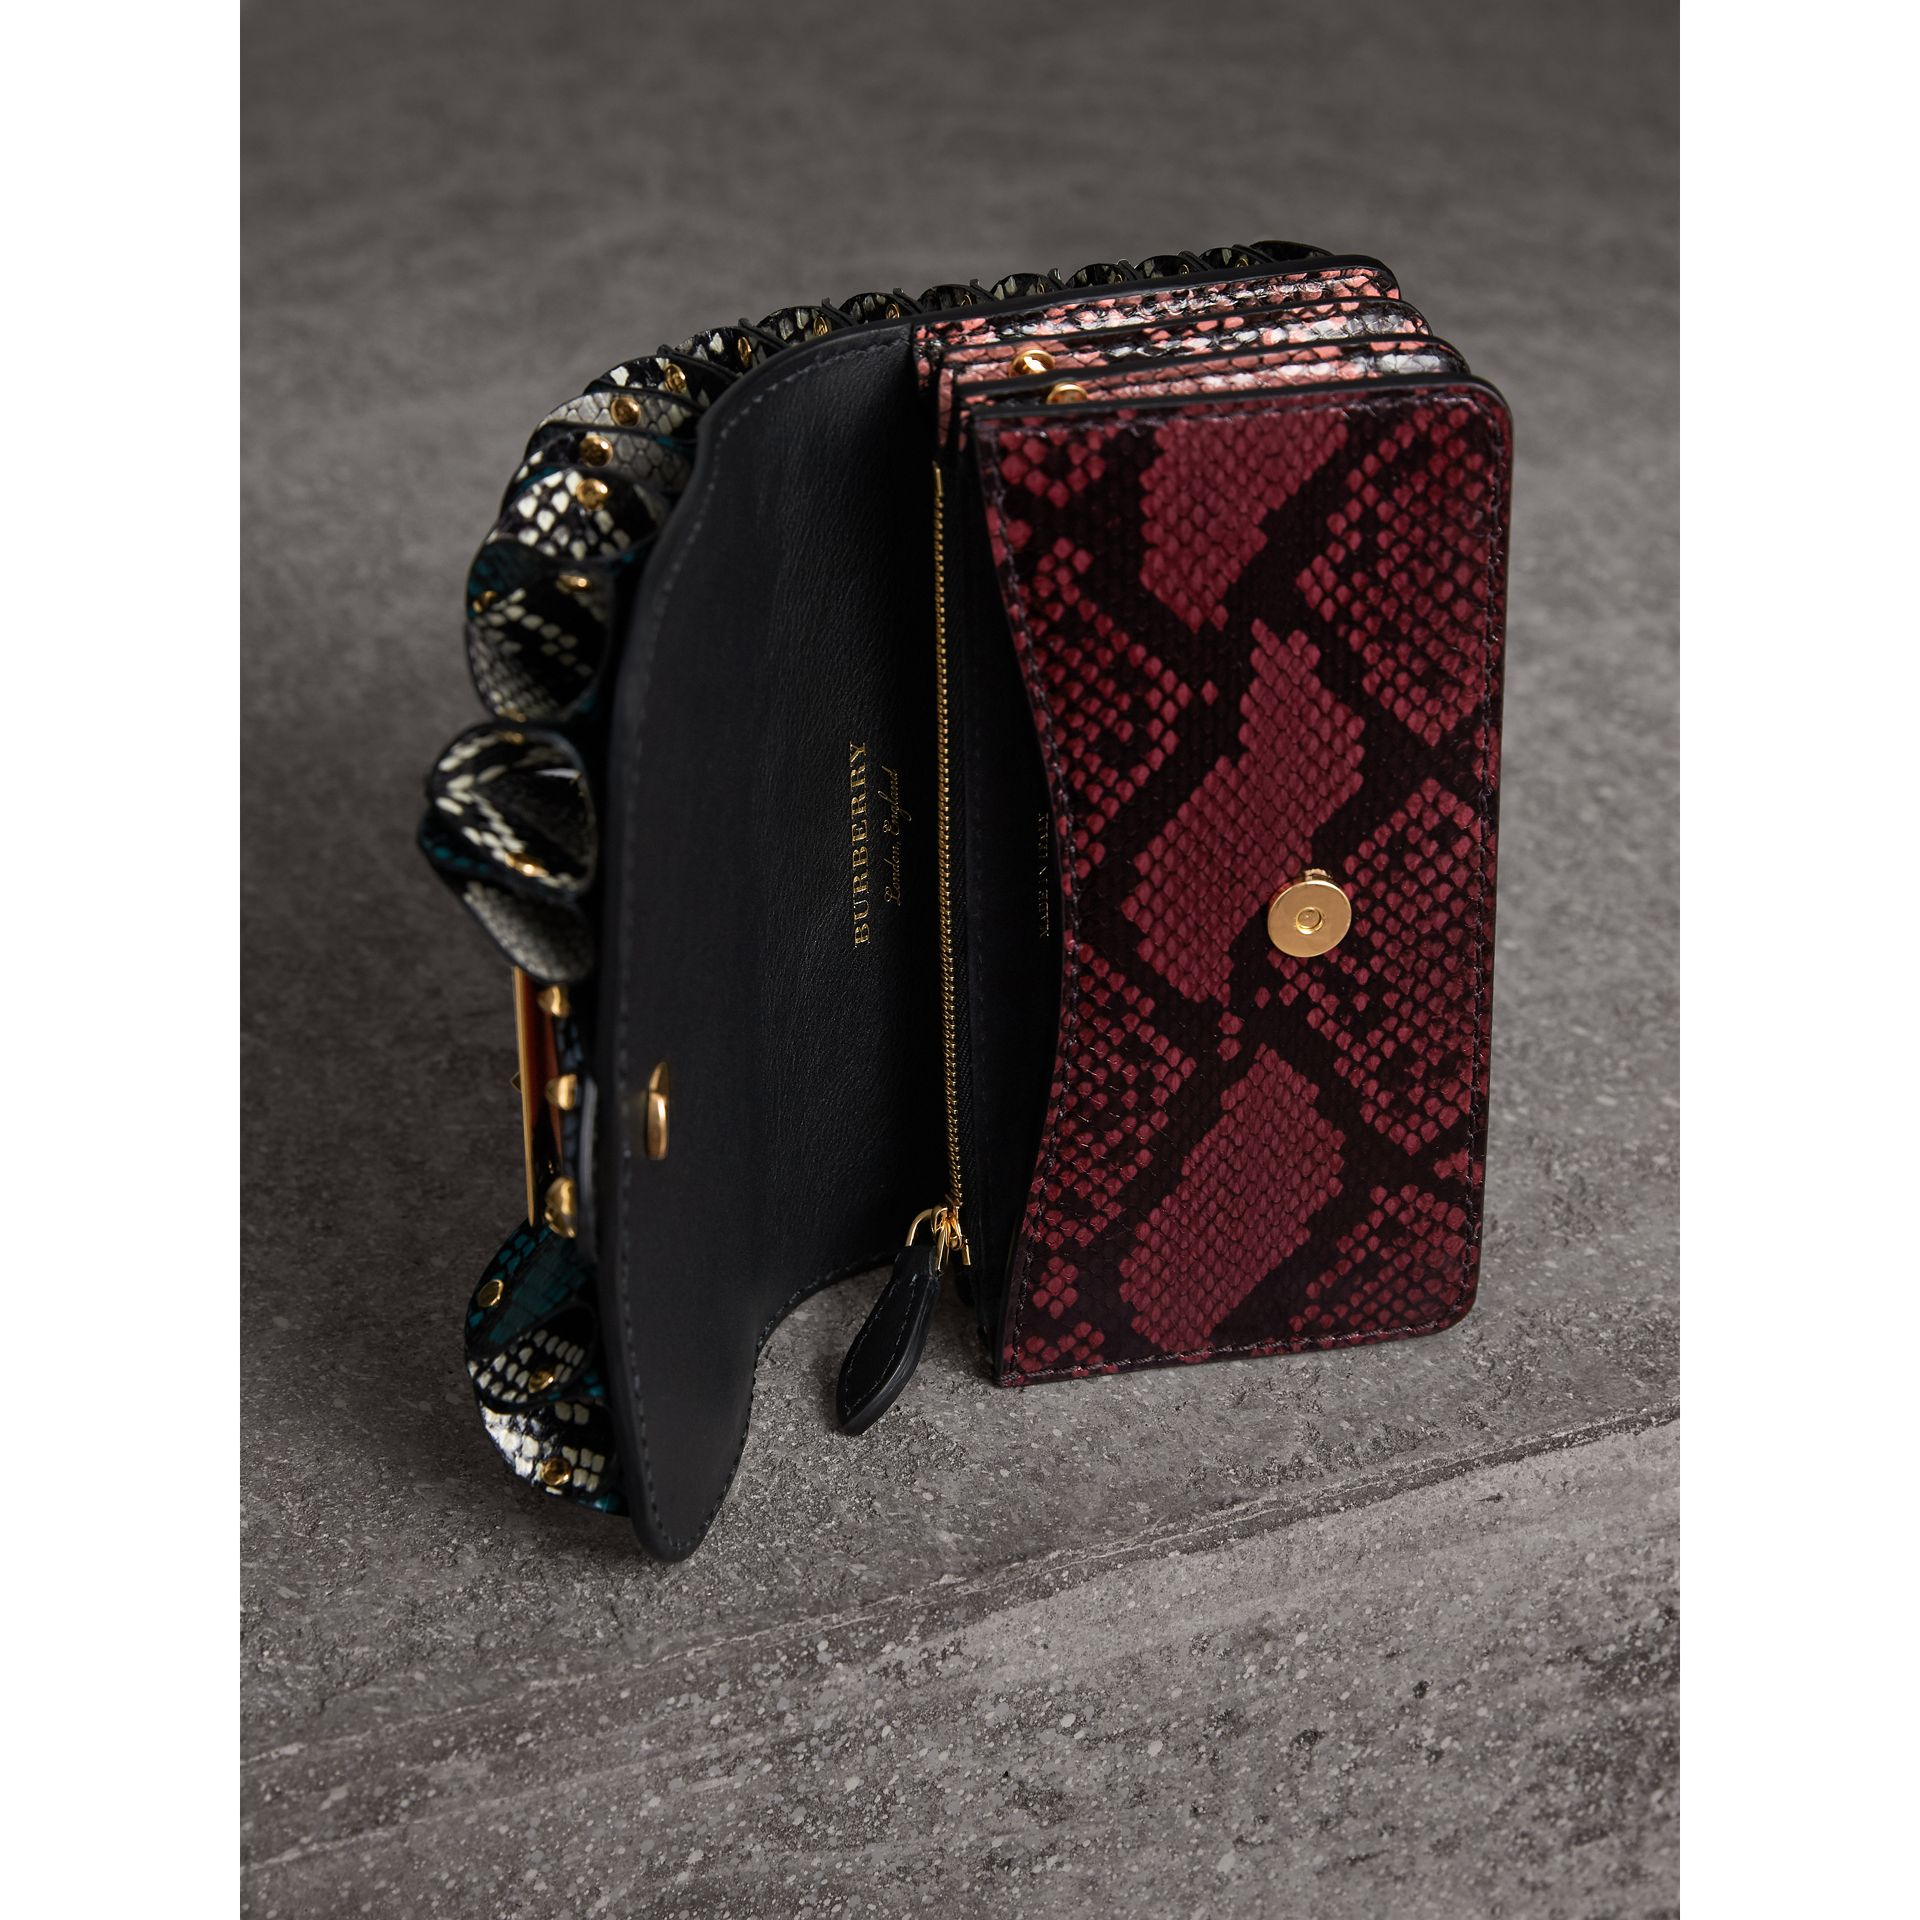 Sac The Ruffle Buckle en peau de serpent et velours (Canard) - Femme | Burberry - photo de la galerie 5